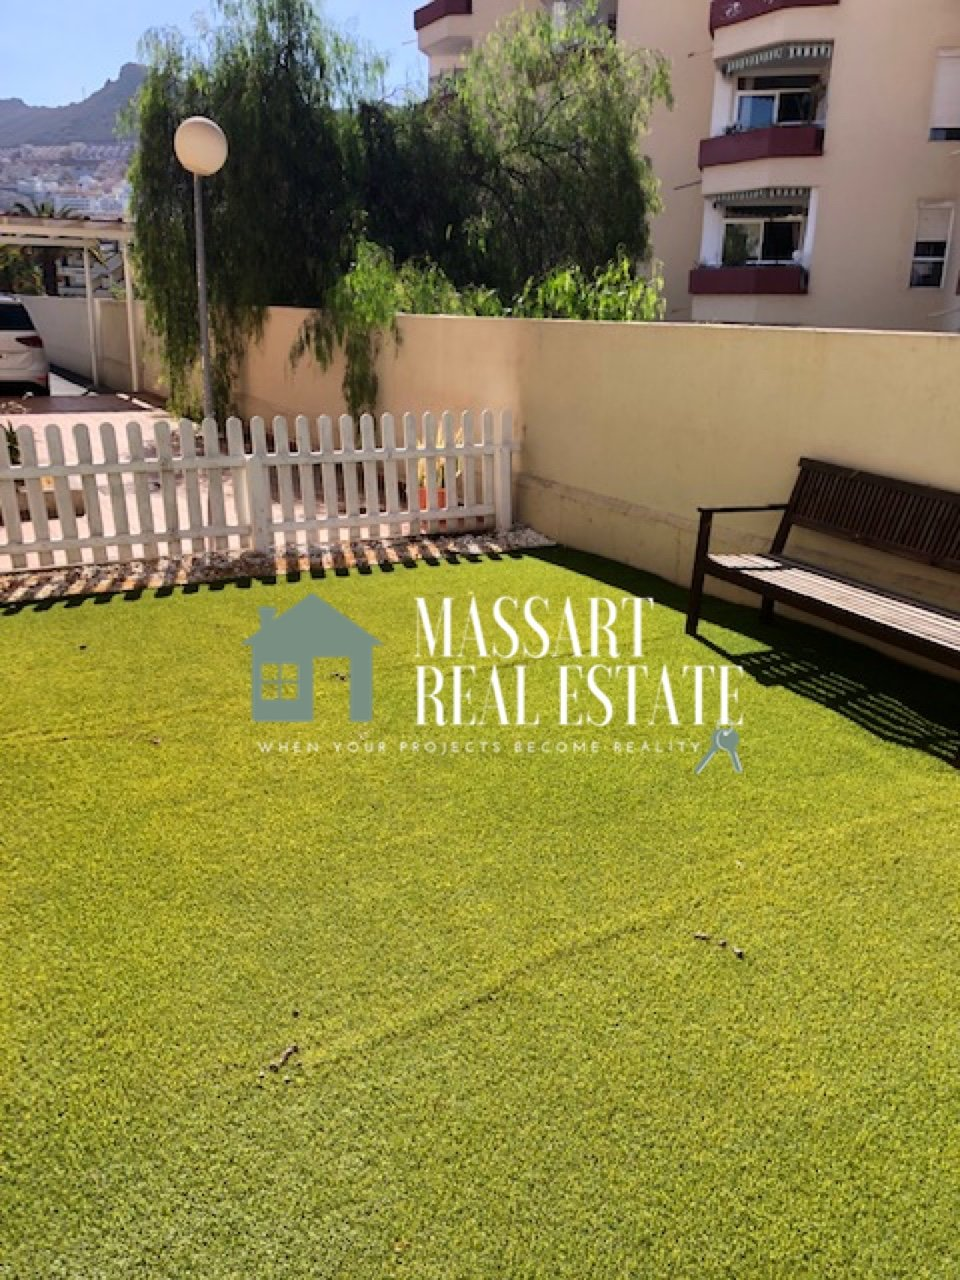 For RENT or FOR SALE, spacious townhouse located in the quiet area of El Madroñal, Costa Adeje.